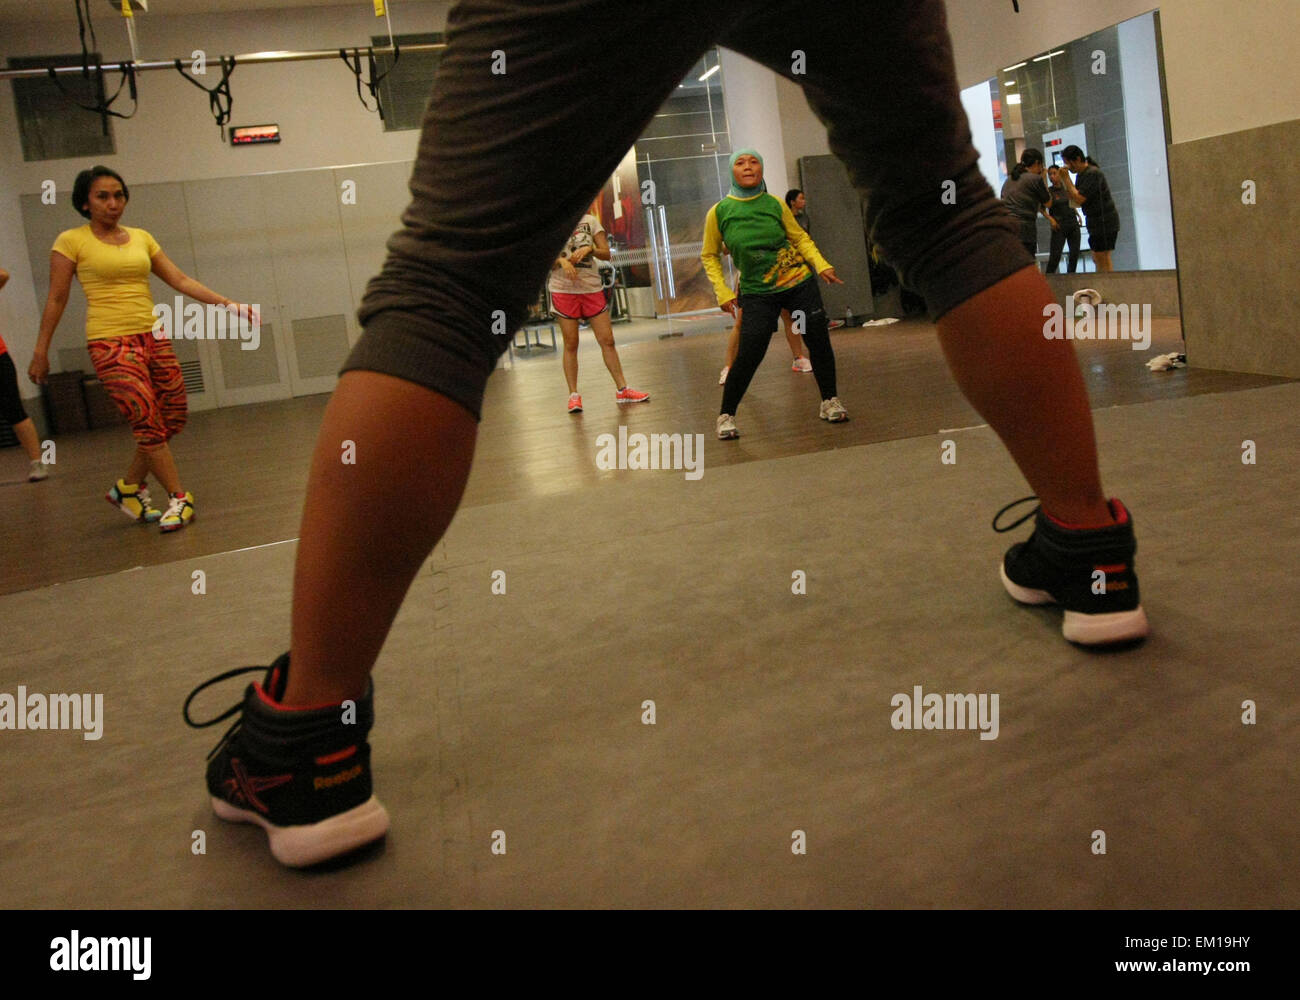 April 15, 2015 - South Jakarta, Jakarta, Indonesia - Zumba is a dance fitness program created by Colombian dancer - Stock Image